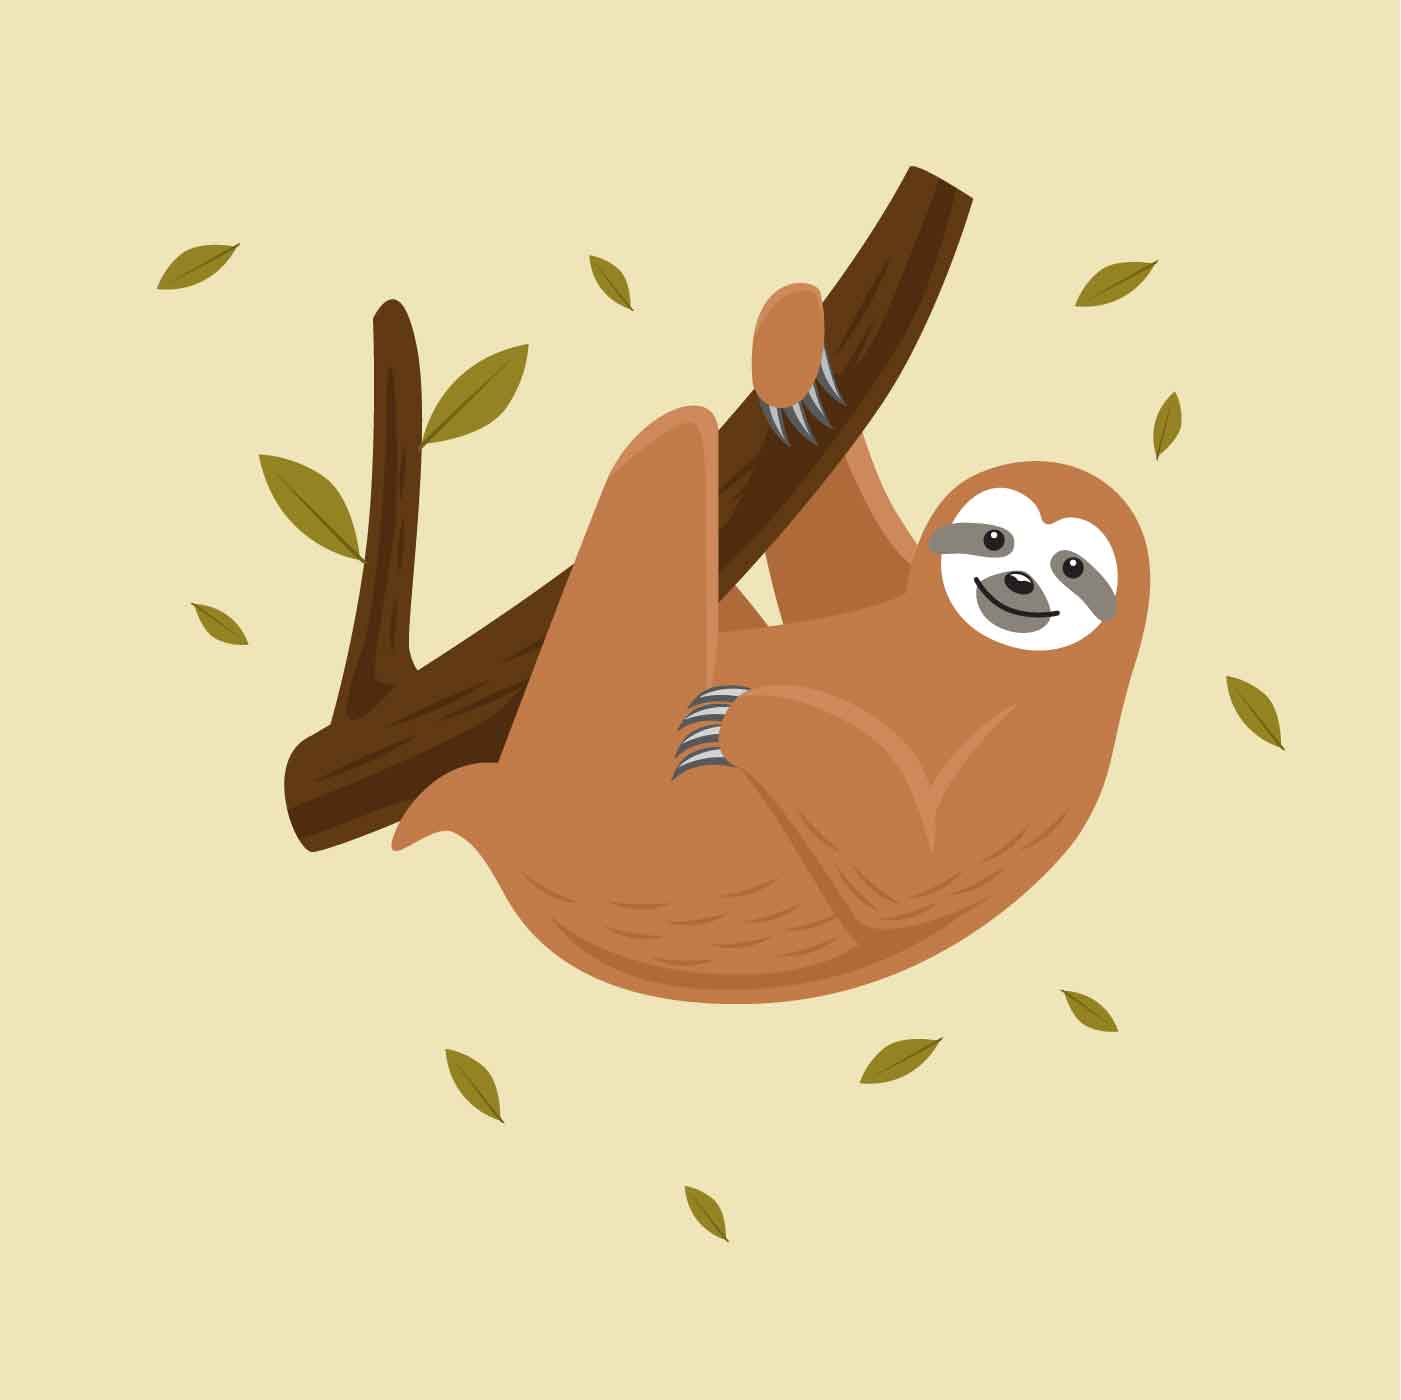 Sloth Vector Illustration - Download Free Vector Art ...